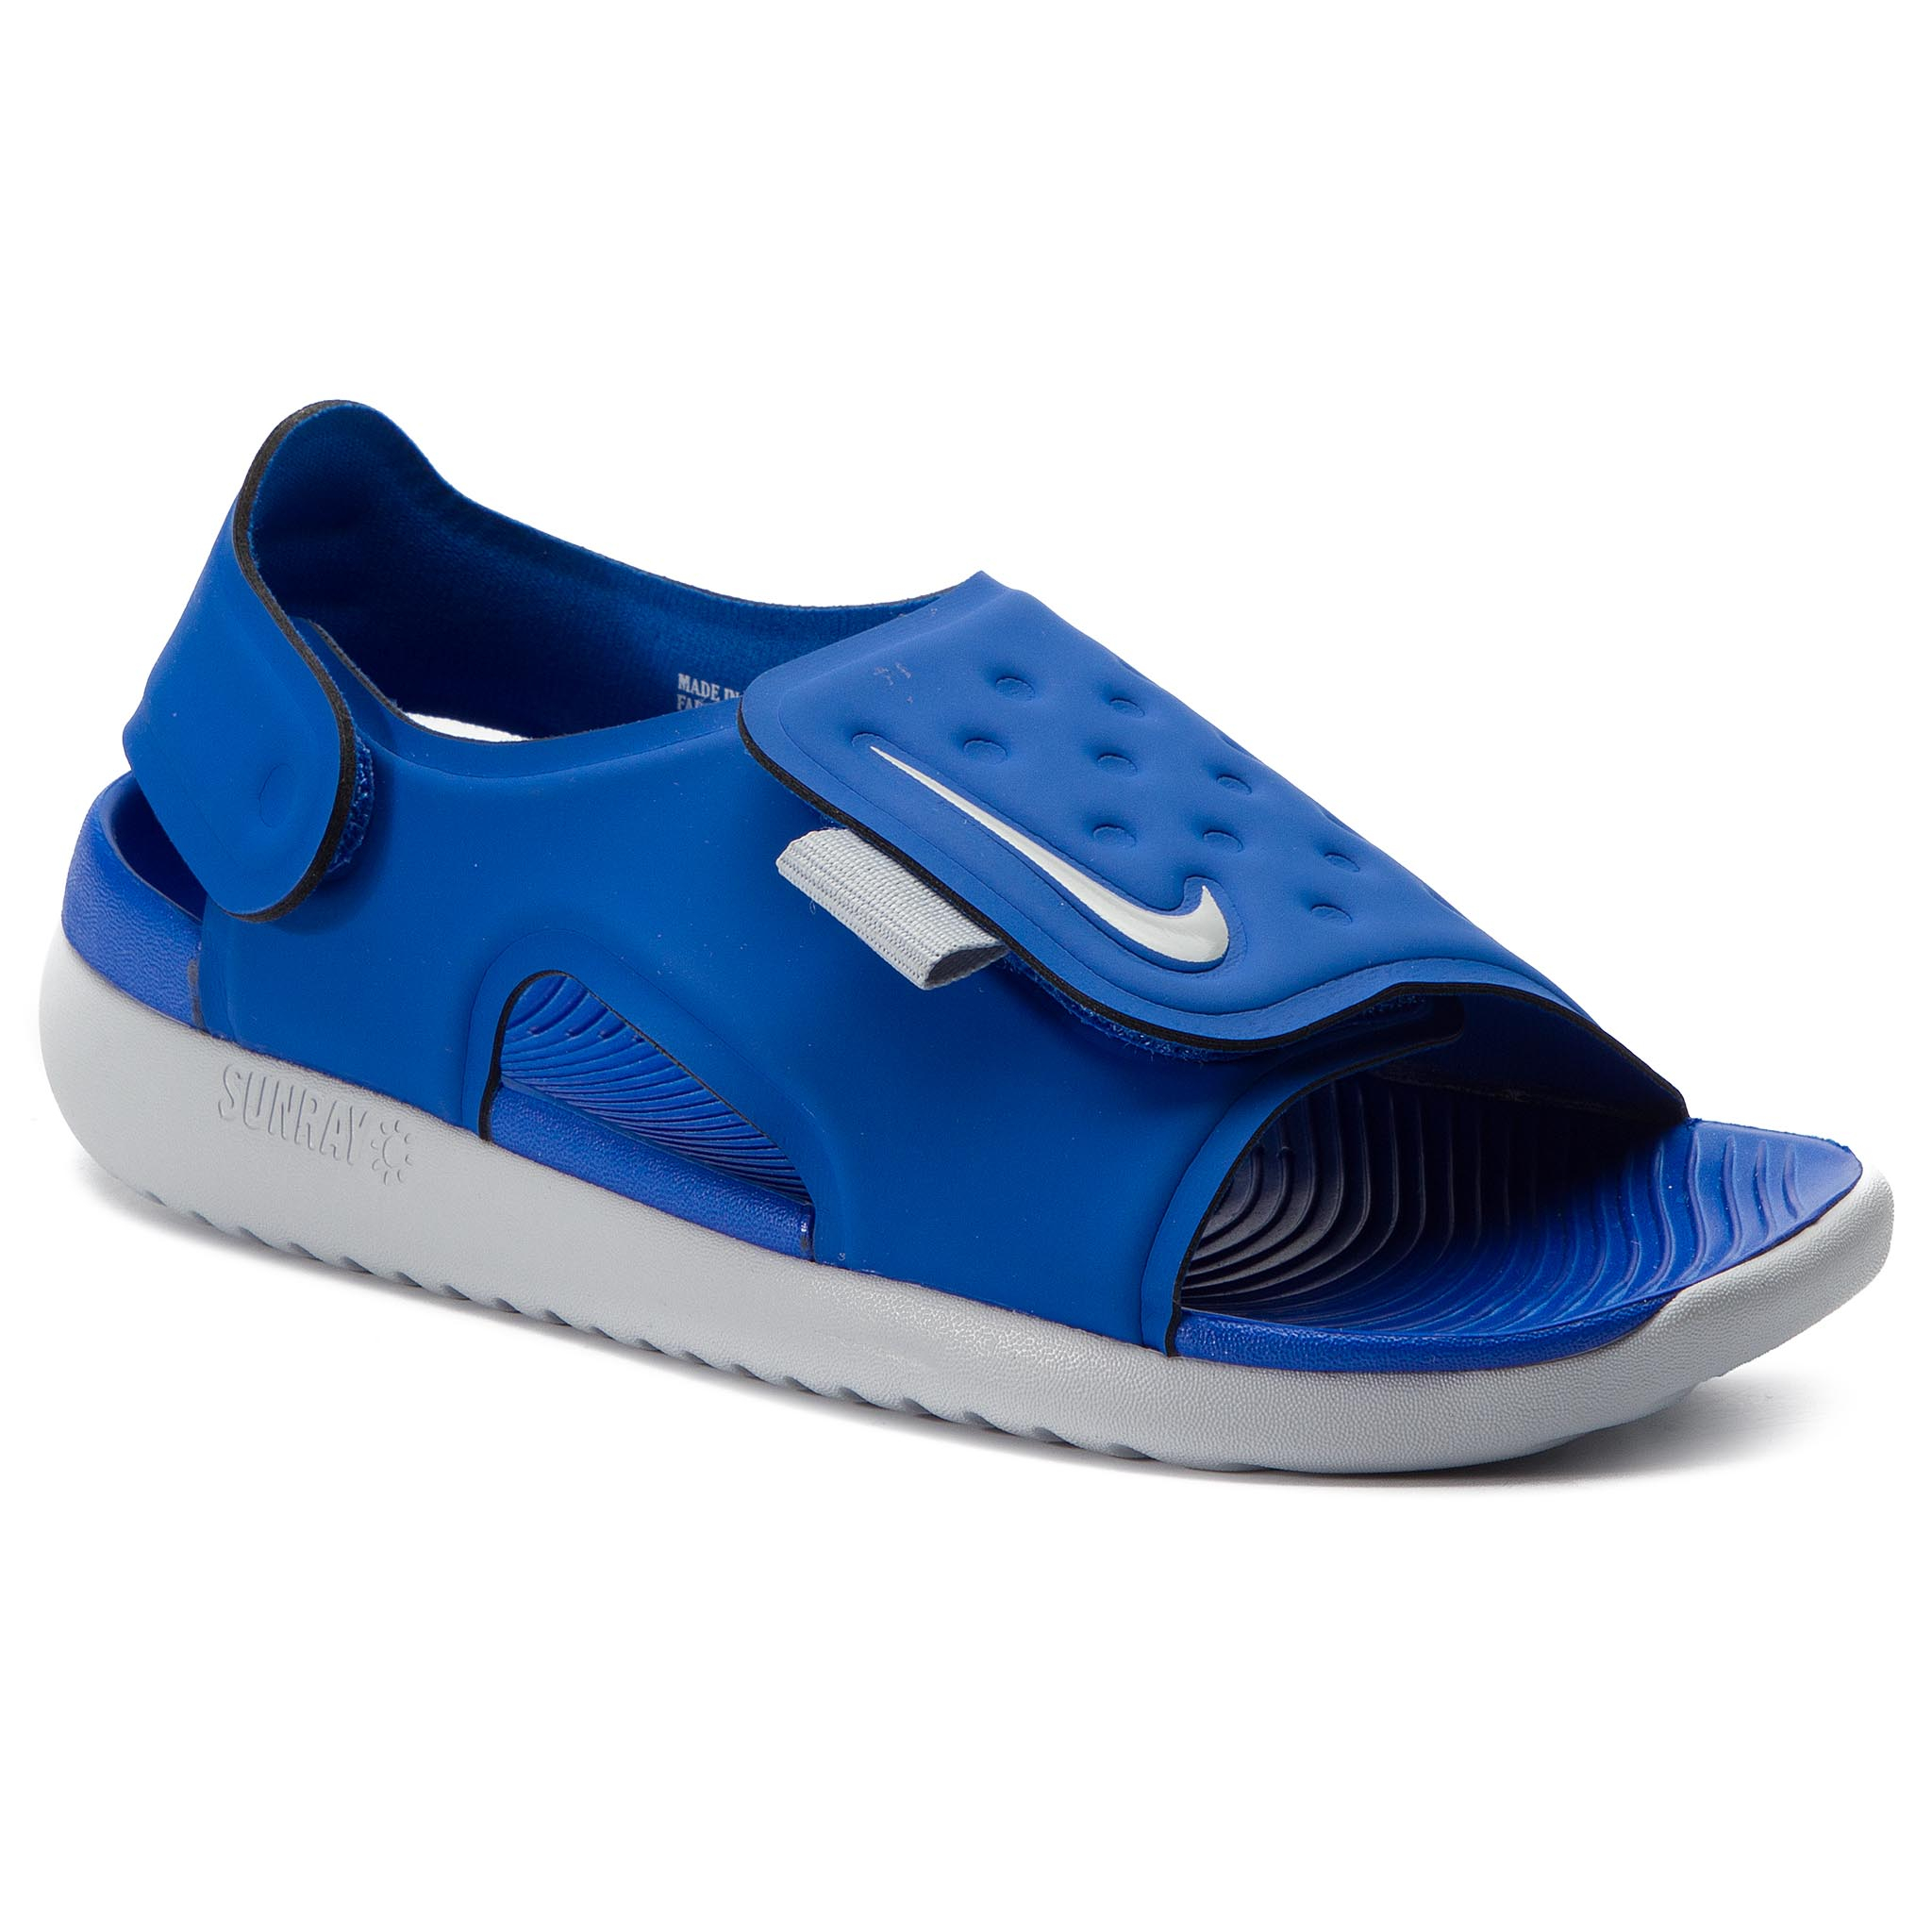 37a41ba0a032 Sandály NIKE - Sunray Adjust 5 (GS PS) AJ9076 400 Game Royal